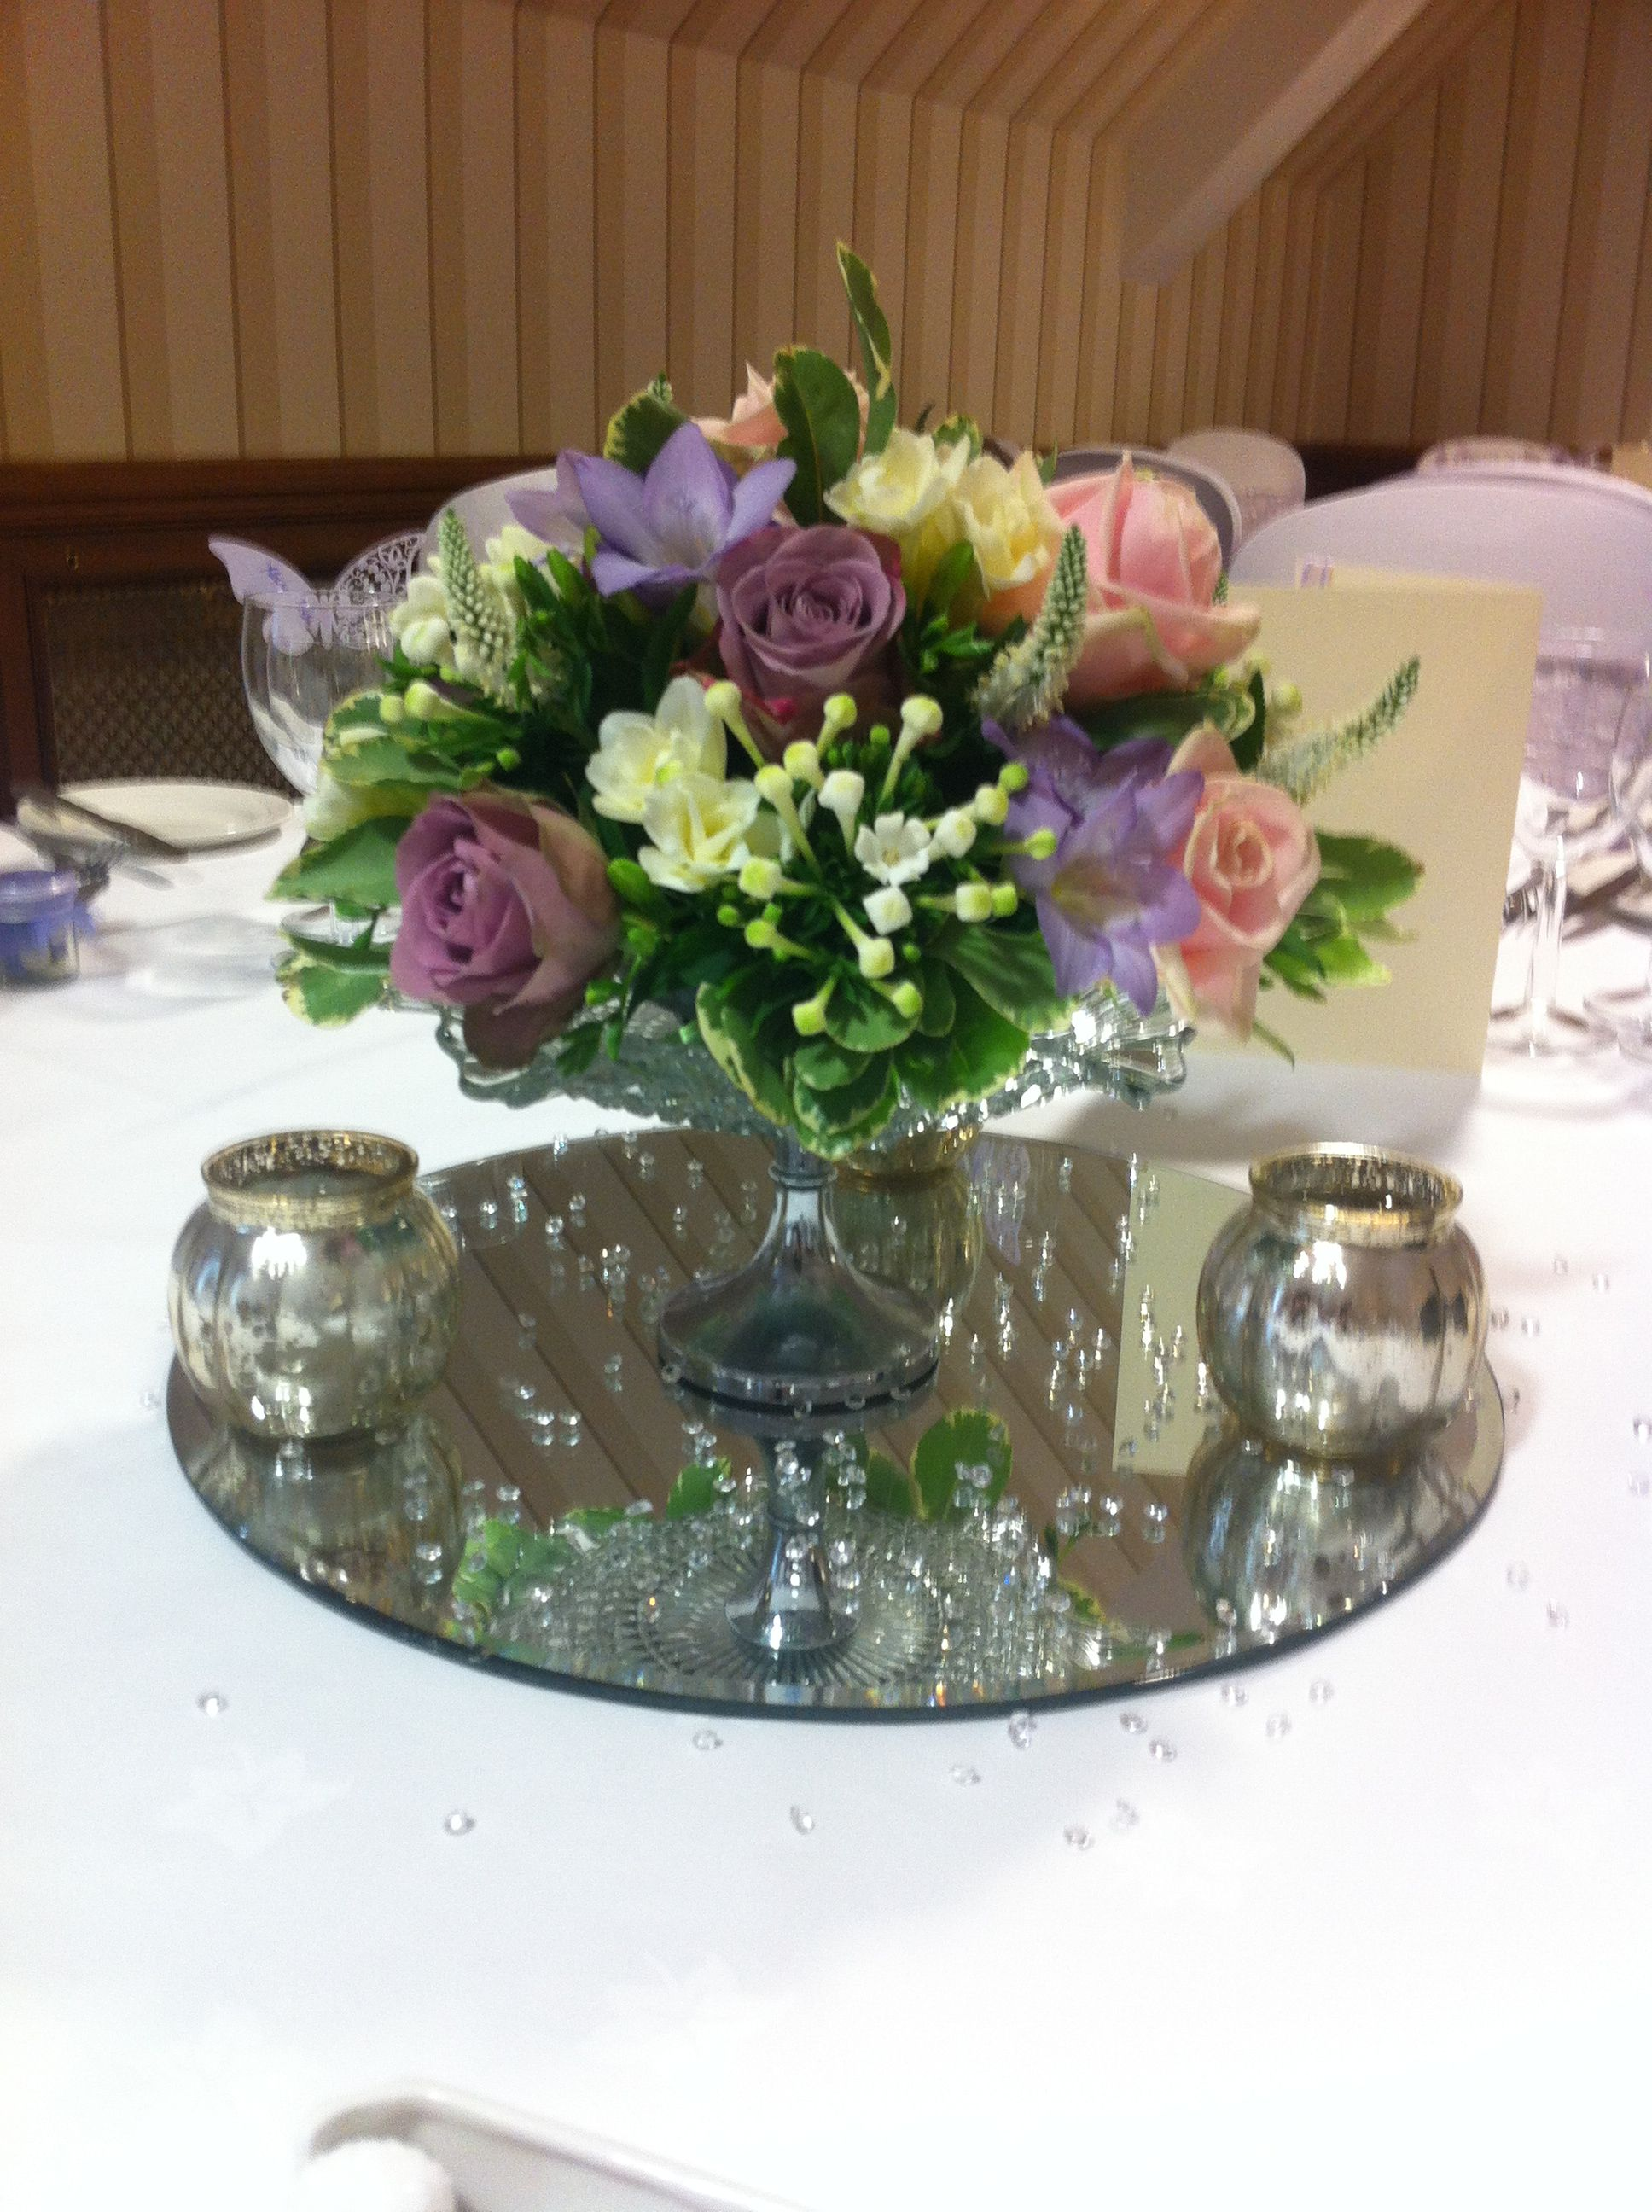 Vintage Glass Cake Stand With Floral Arrangement